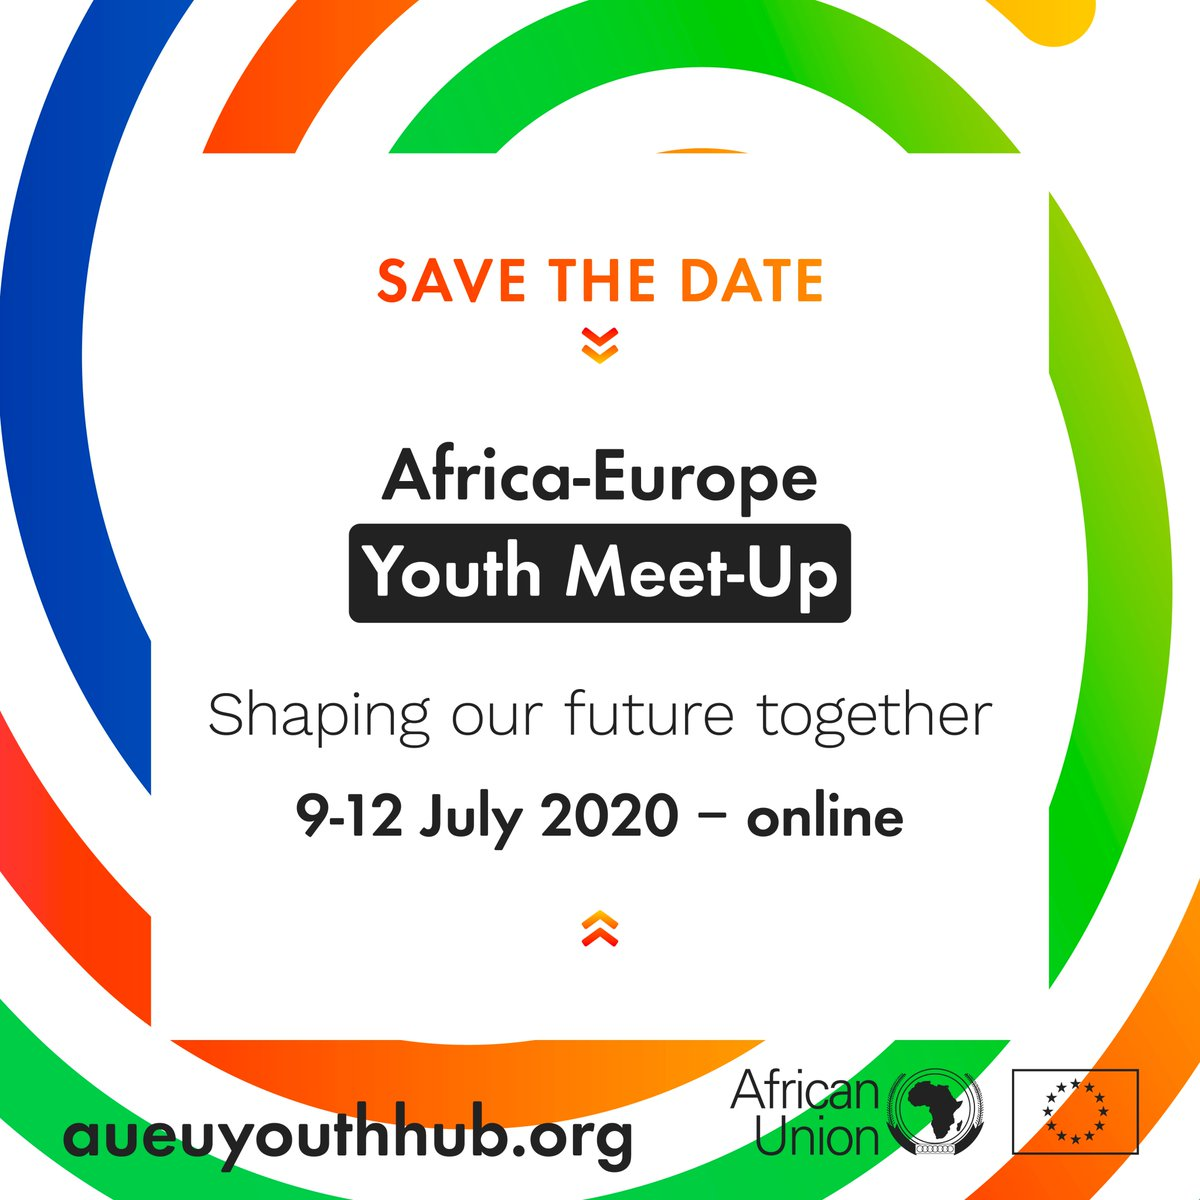 #EuropeDay: 9 May - #AfricaDay:TODAY!  Nothing will stop African & European #youth from coming together to discuss our future.   Save the Date for the  Meet-up  This is a youth consultation on the road to the African-European Summit Stay safe & stay tuned #aueutyouthhubpic.twitter.com/QUMw3iozPp